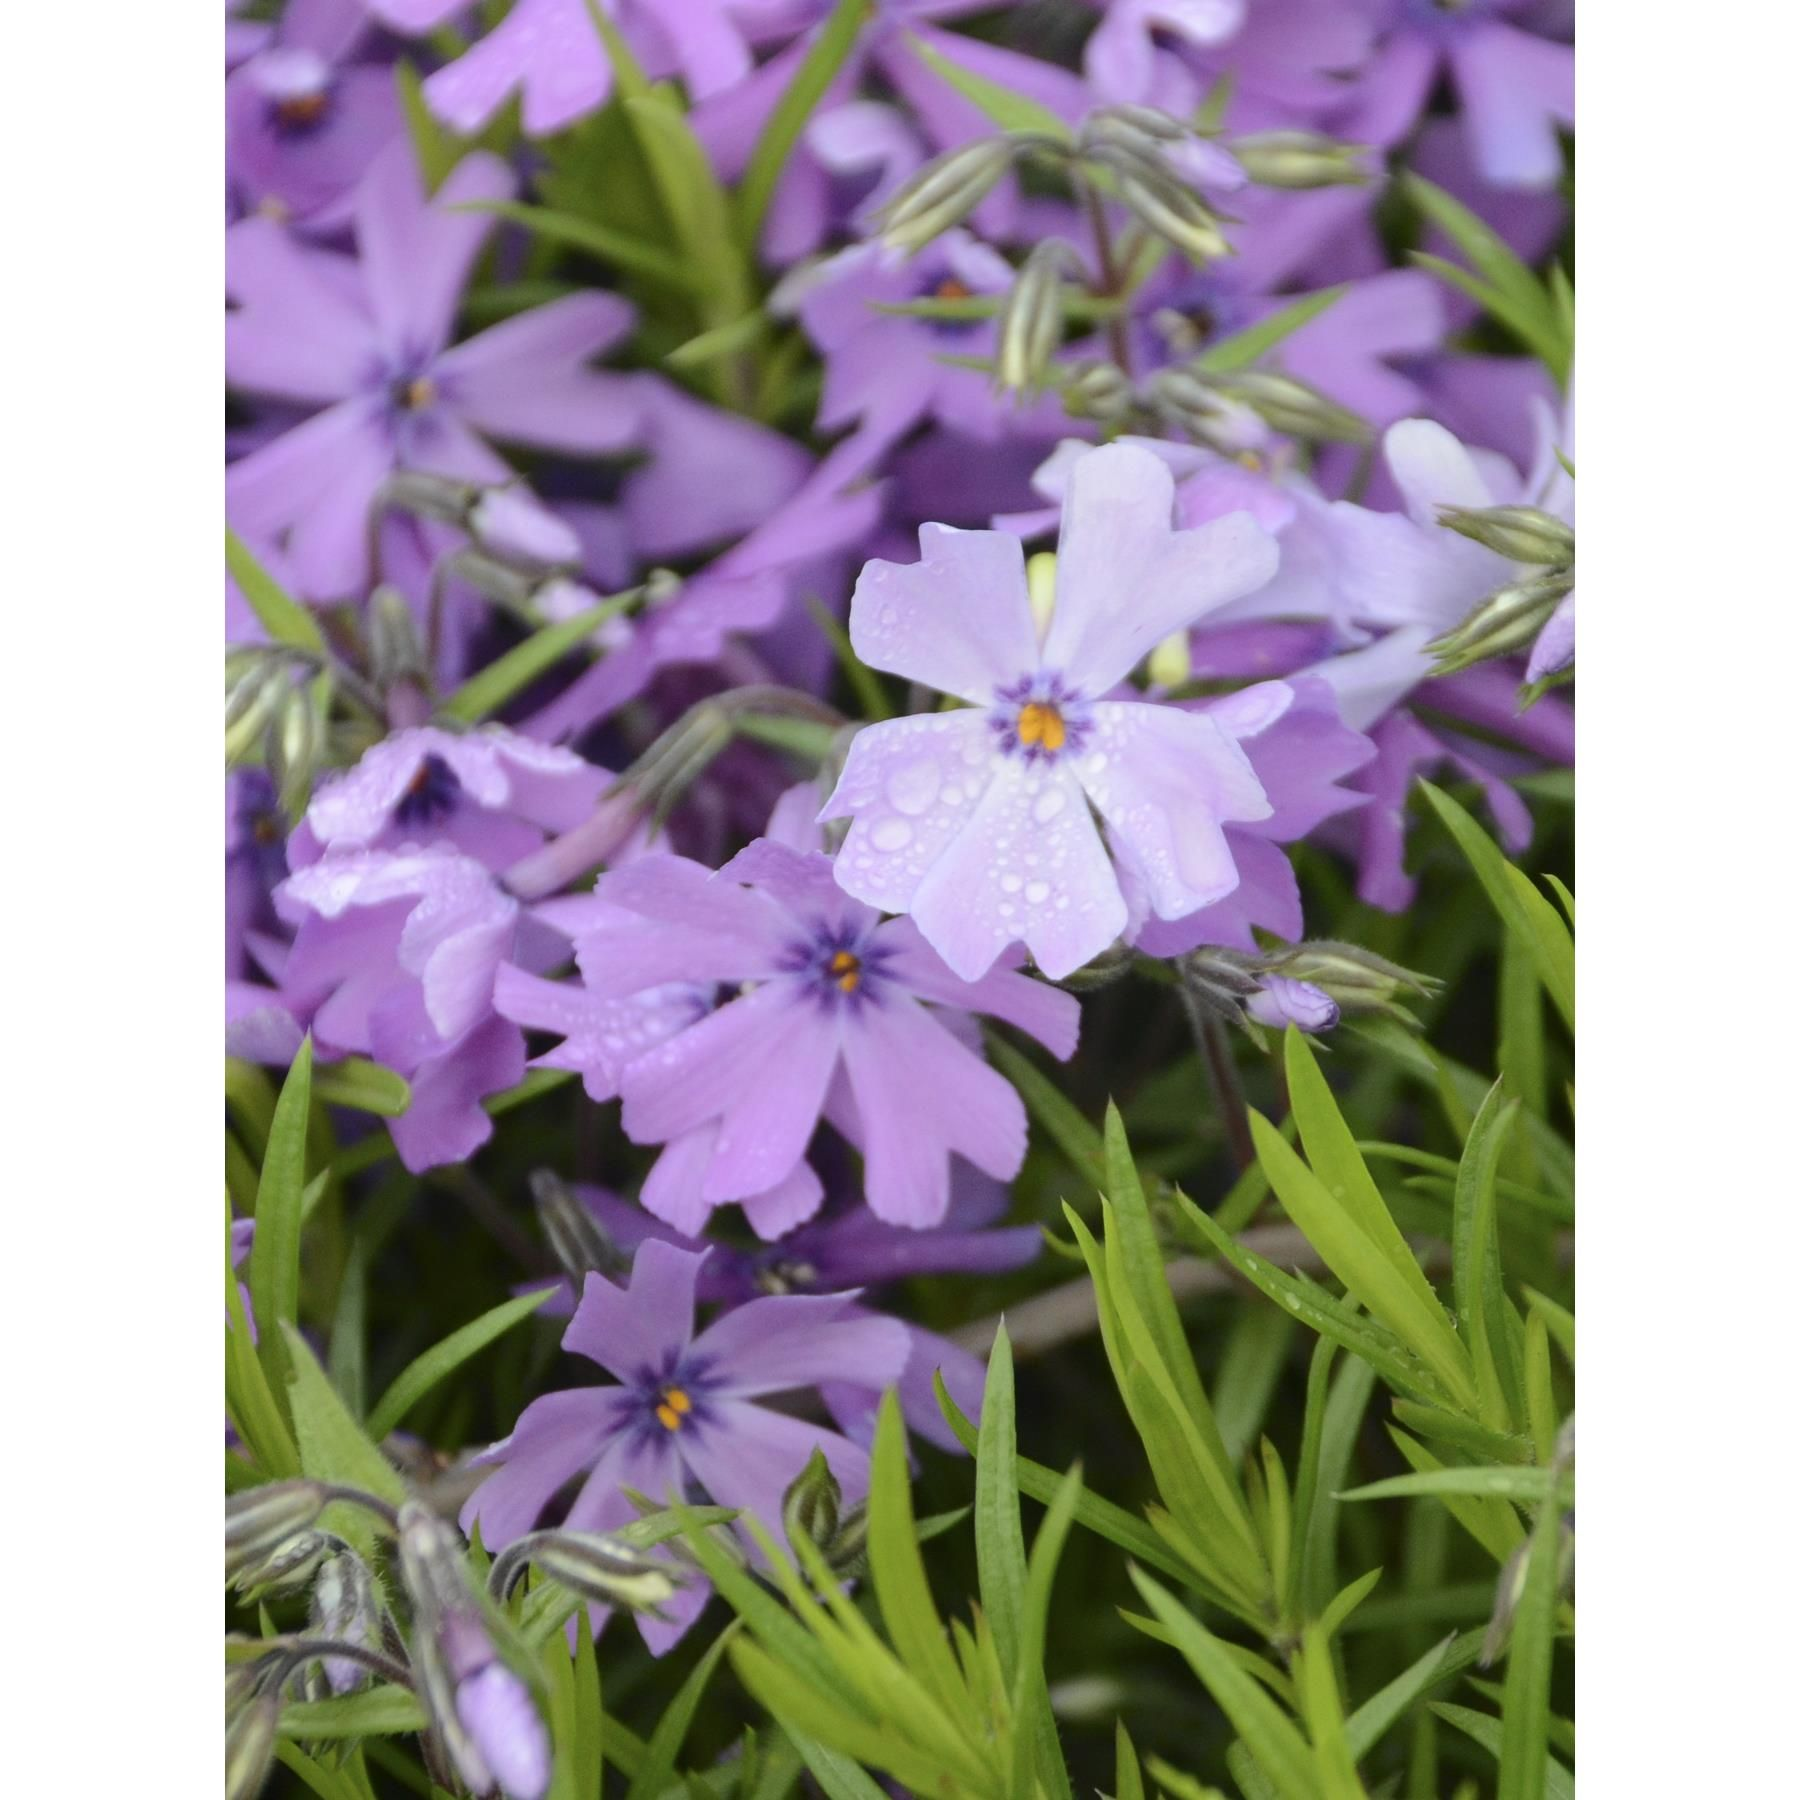 Perennial purple beauty creeping phlox as yard pinterest buy purple beauty phlox subulata featuring small purple flowers and vigorous green foliage no taller than 4 inches an excellent spring groundcover mightylinksfo